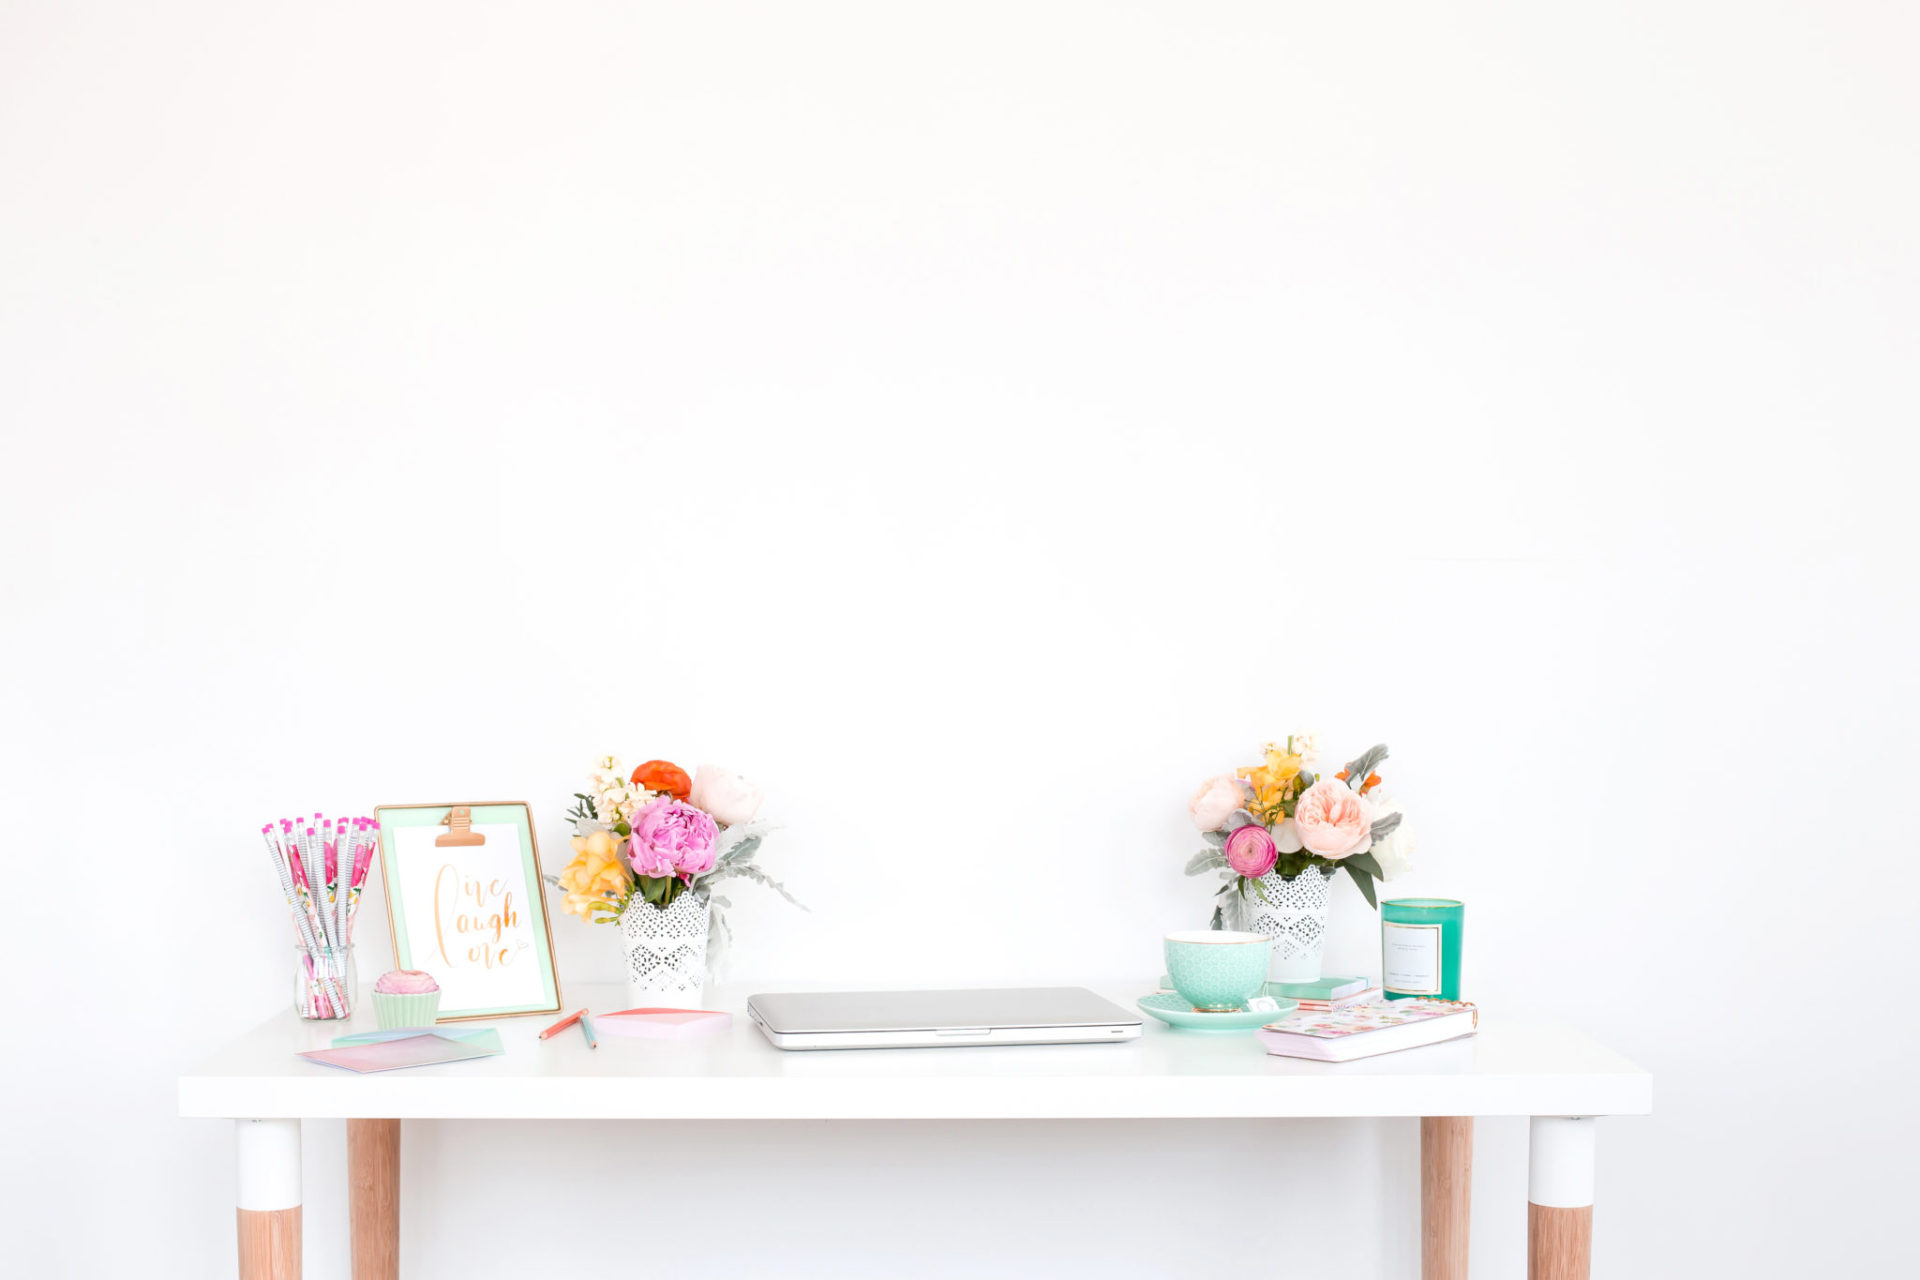 How to start lifestyle blogging